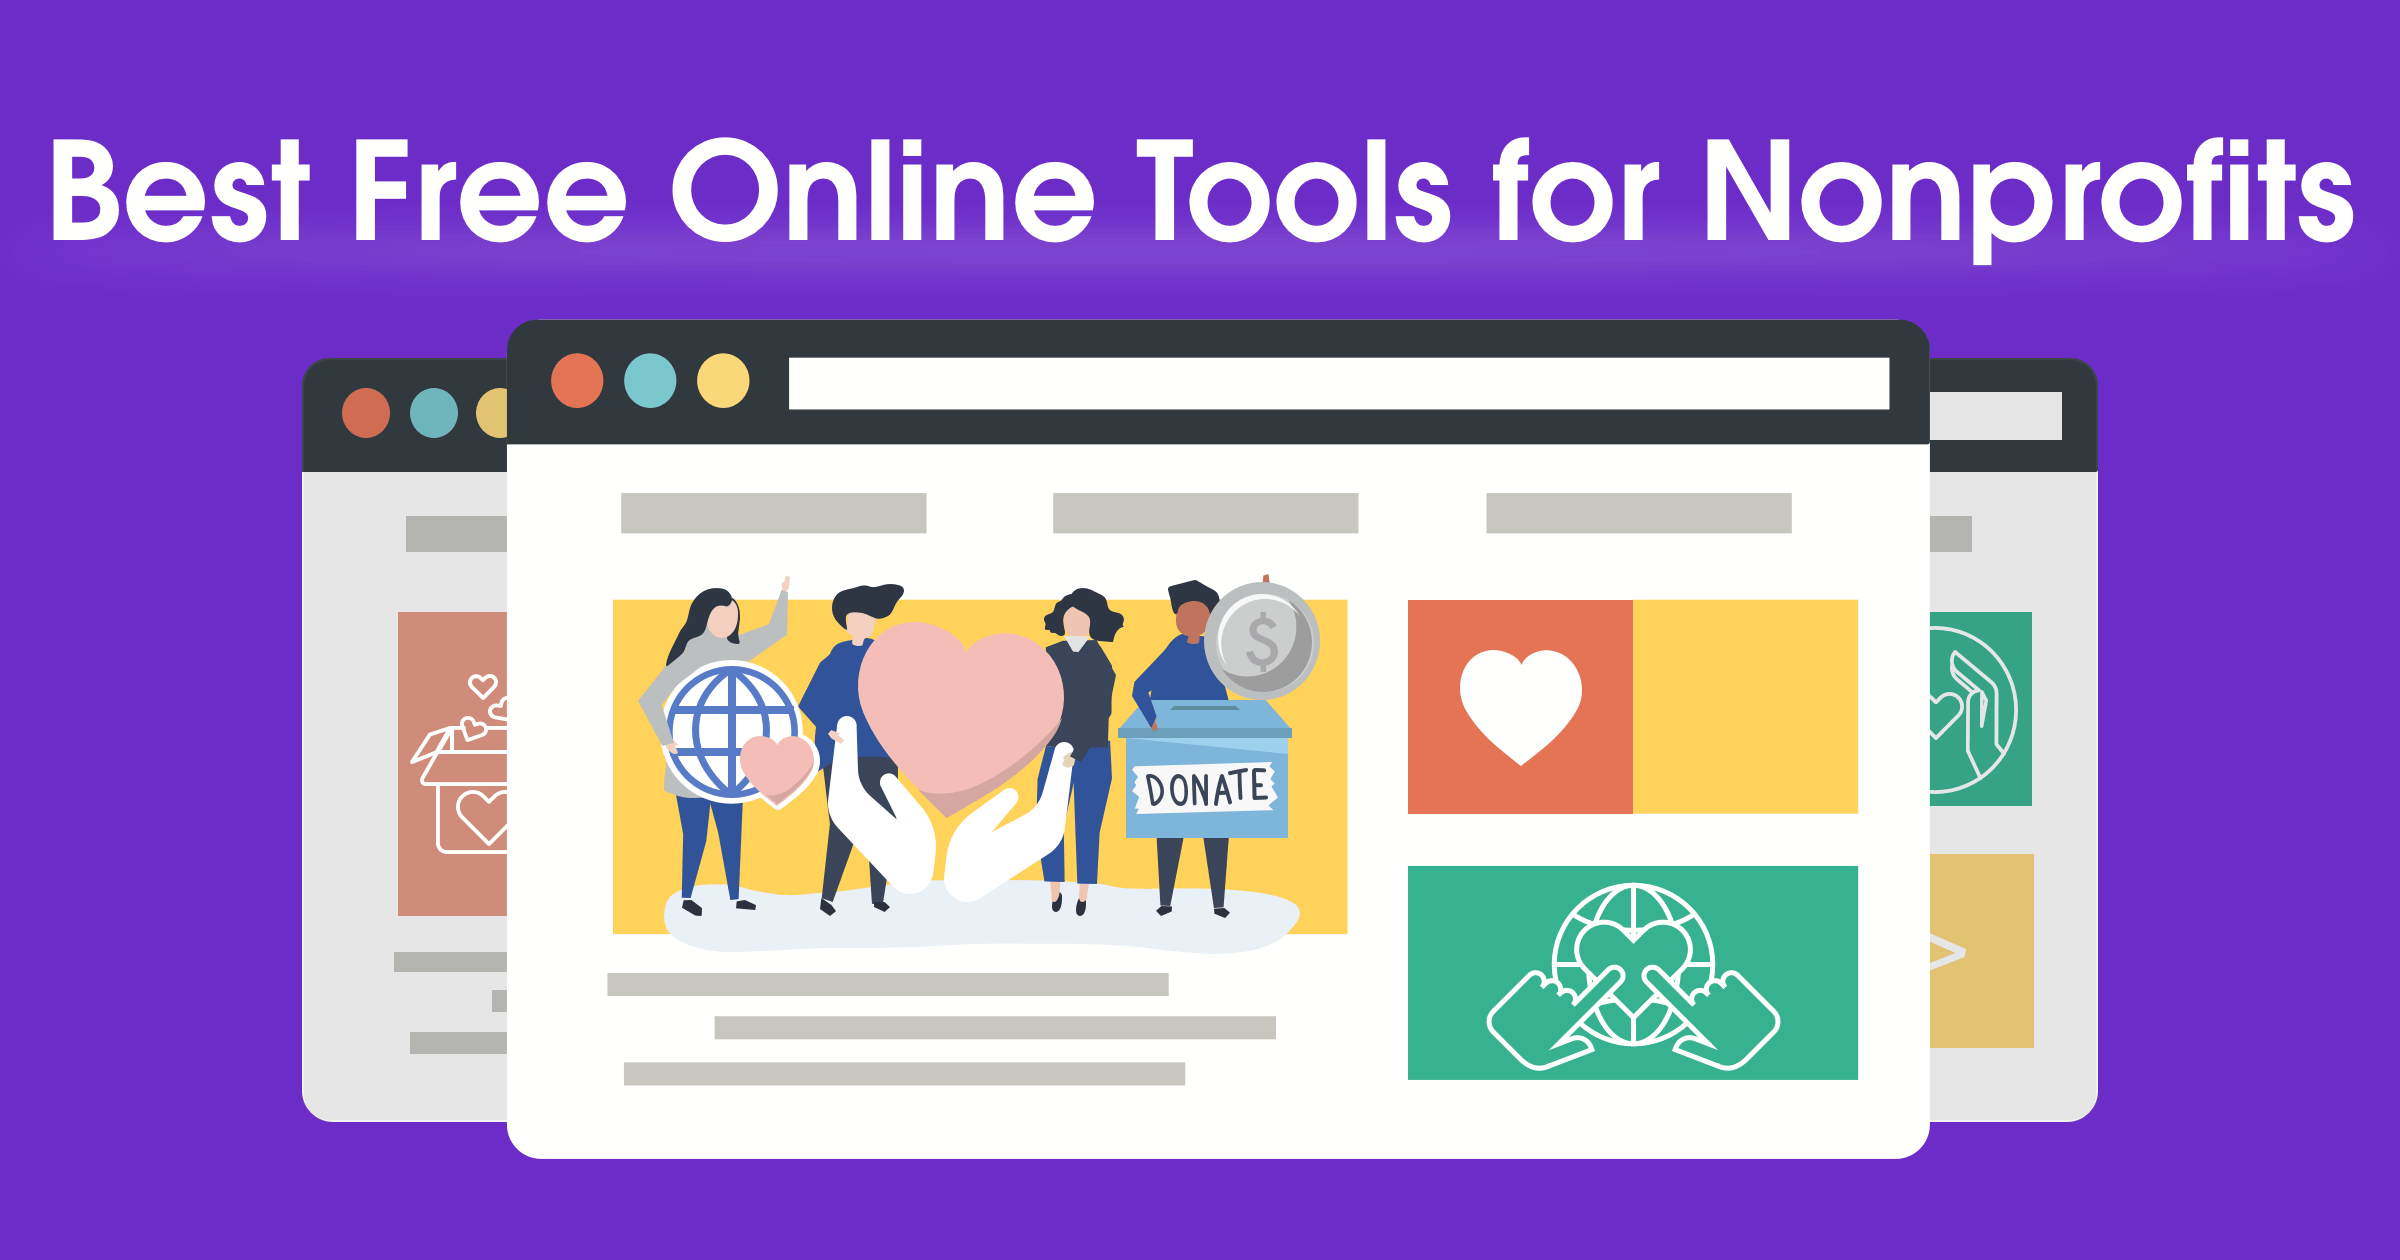 Useful Free Online Tools: Best Things To Know About